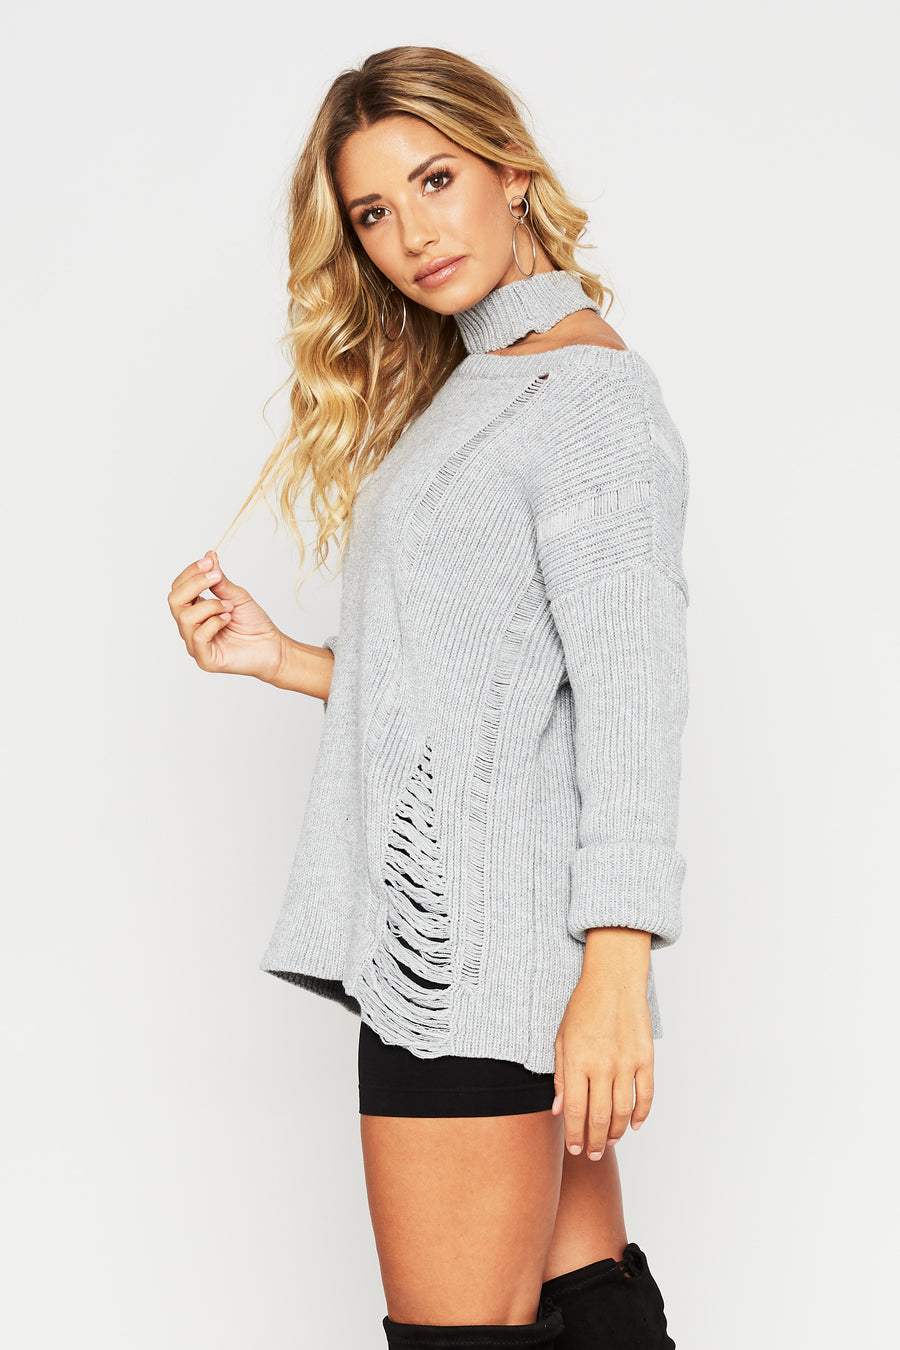 Watson Distressed Sweater - HoneyBum